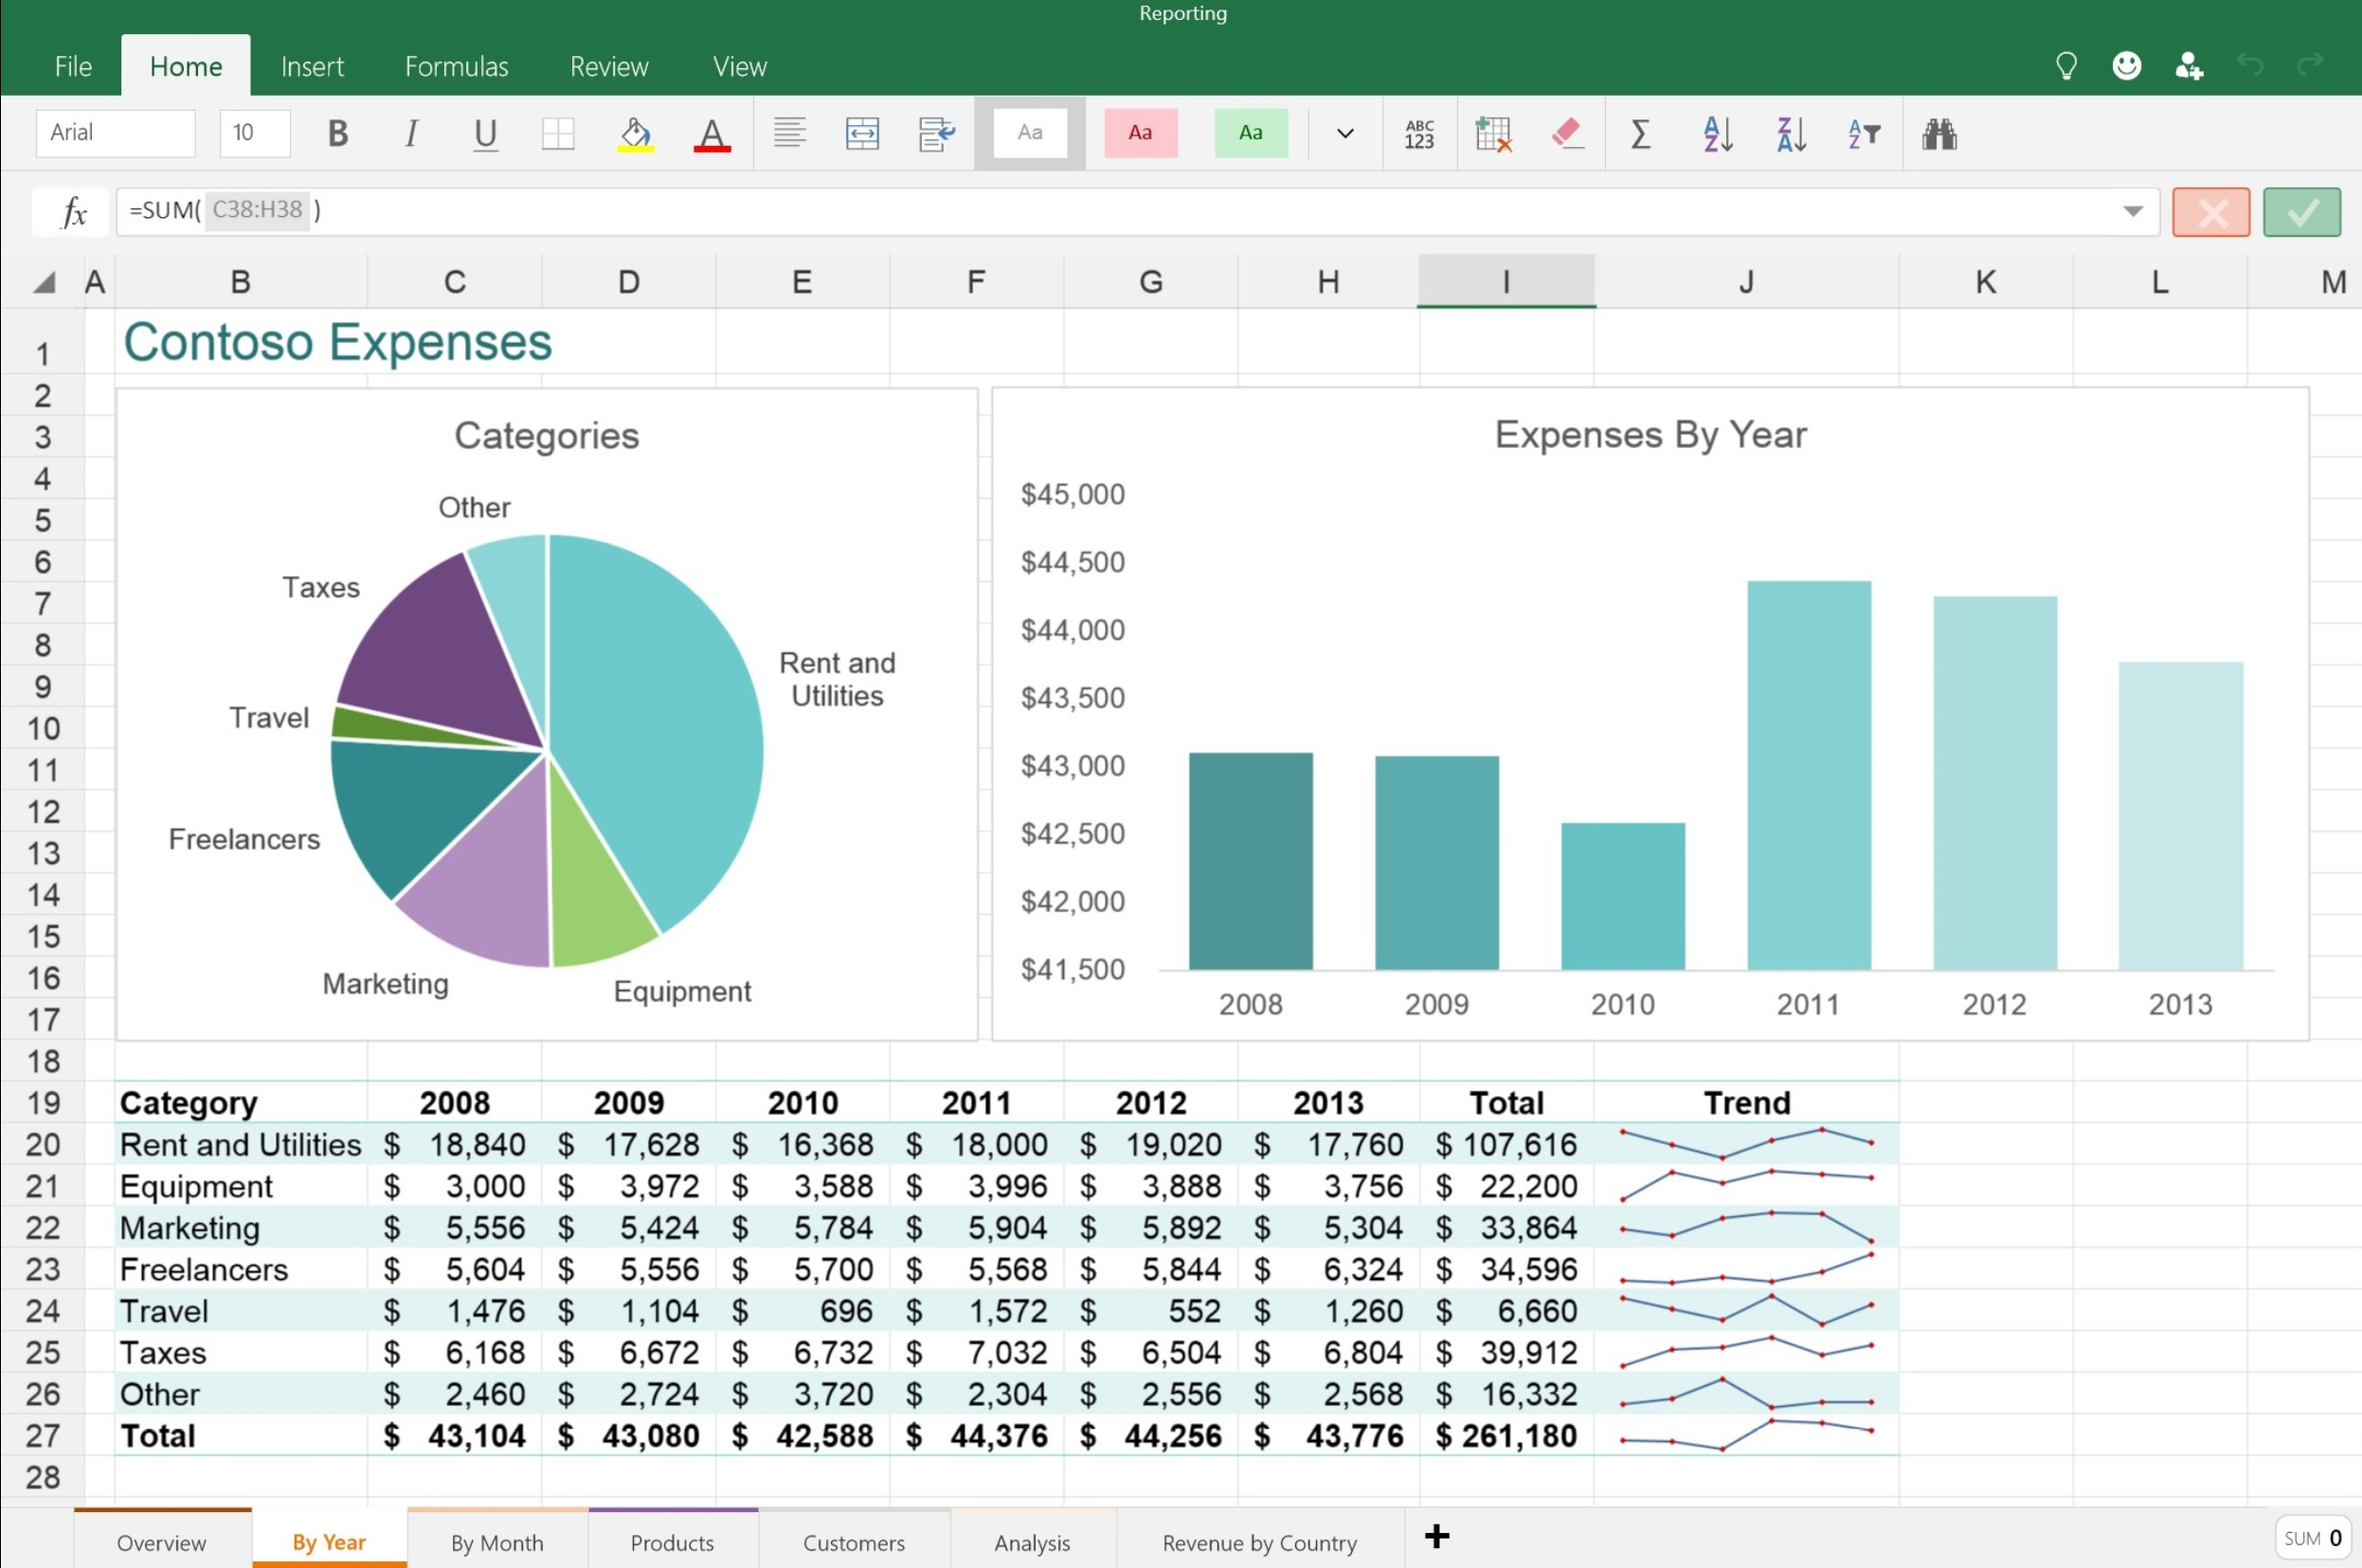 Ediblewildsus  Remarkable Features Available In The New Word Excel And Powerpoint Apps For  With Likable Excel Touch App  With Lovely What Do You Mean By Vlookup In Excel Also Excel Highlight In Addition How To Find Percentages In Excel And What Is And Function In Excel As Well As Turn Csv Into Excel Additionally Timetable In Excel From Mspowerusercom With Ediblewildsus  Likable Features Available In The New Word Excel And Powerpoint Apps For  With Lovely Excel Touch App  And Remarkable What Do You Mean By Vlookup In Excel Also Excel Highlight In Addition How To Find Percentages In Excel From Mspowerusercom